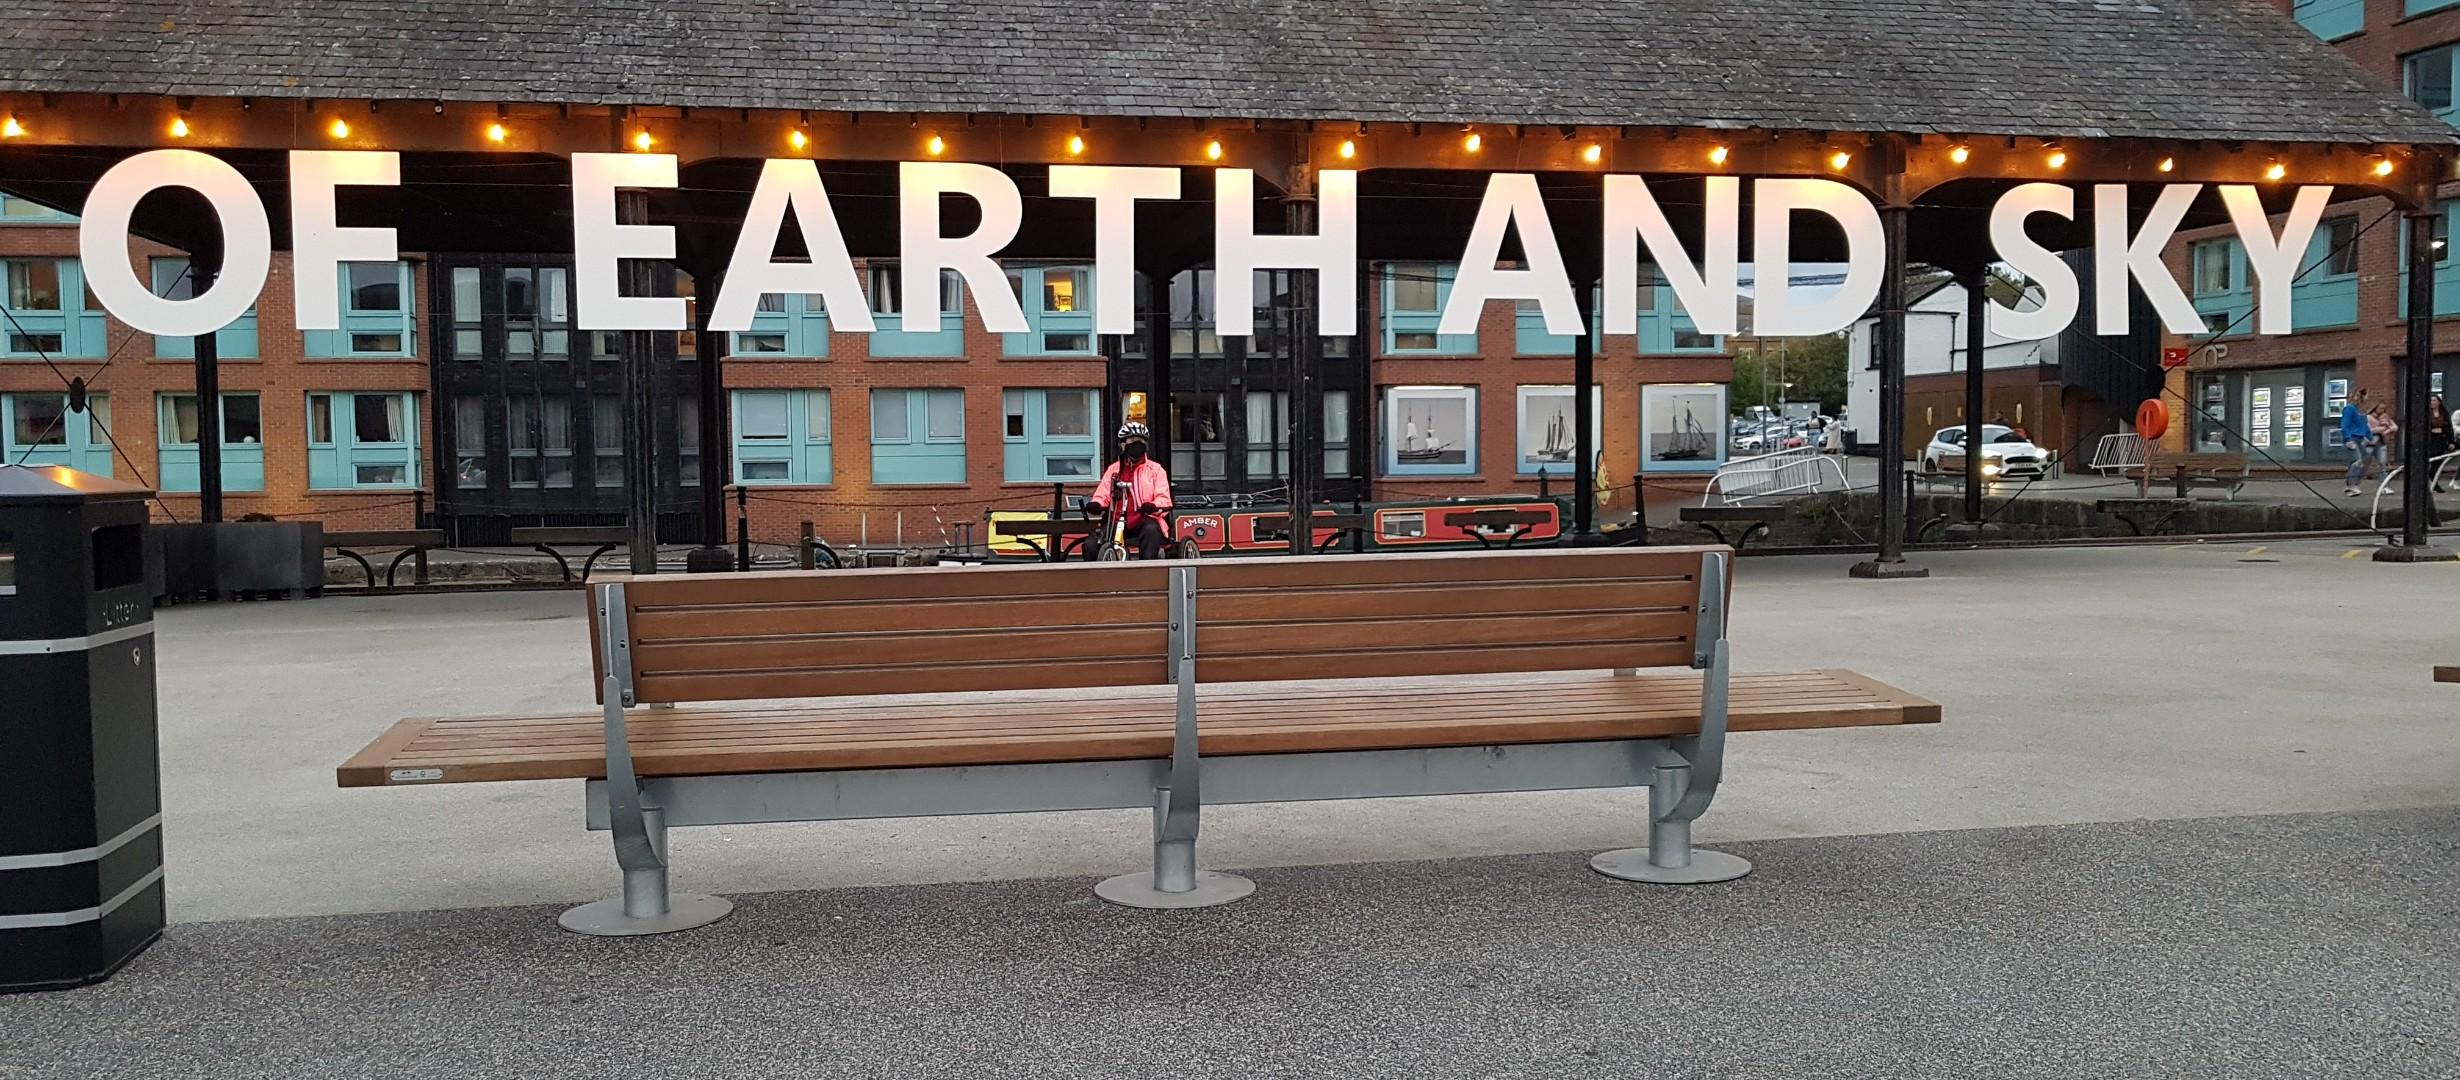 text reads 'of earth and sky' above a park bench